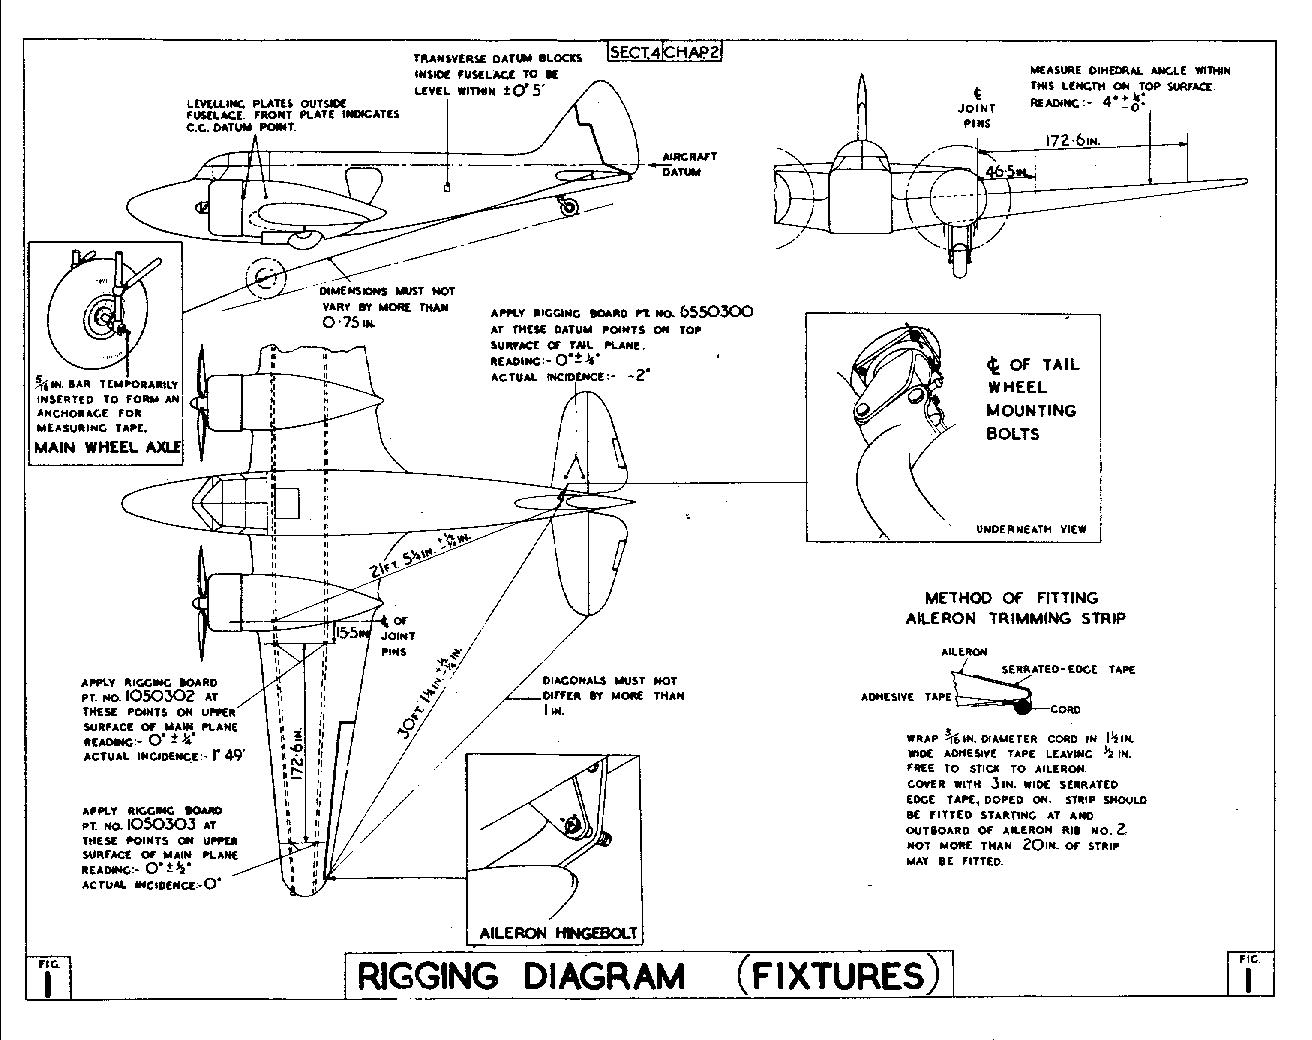 hight resolution of the airspeed consul aircraft airplane engine diagram rigging diagram of aircraft